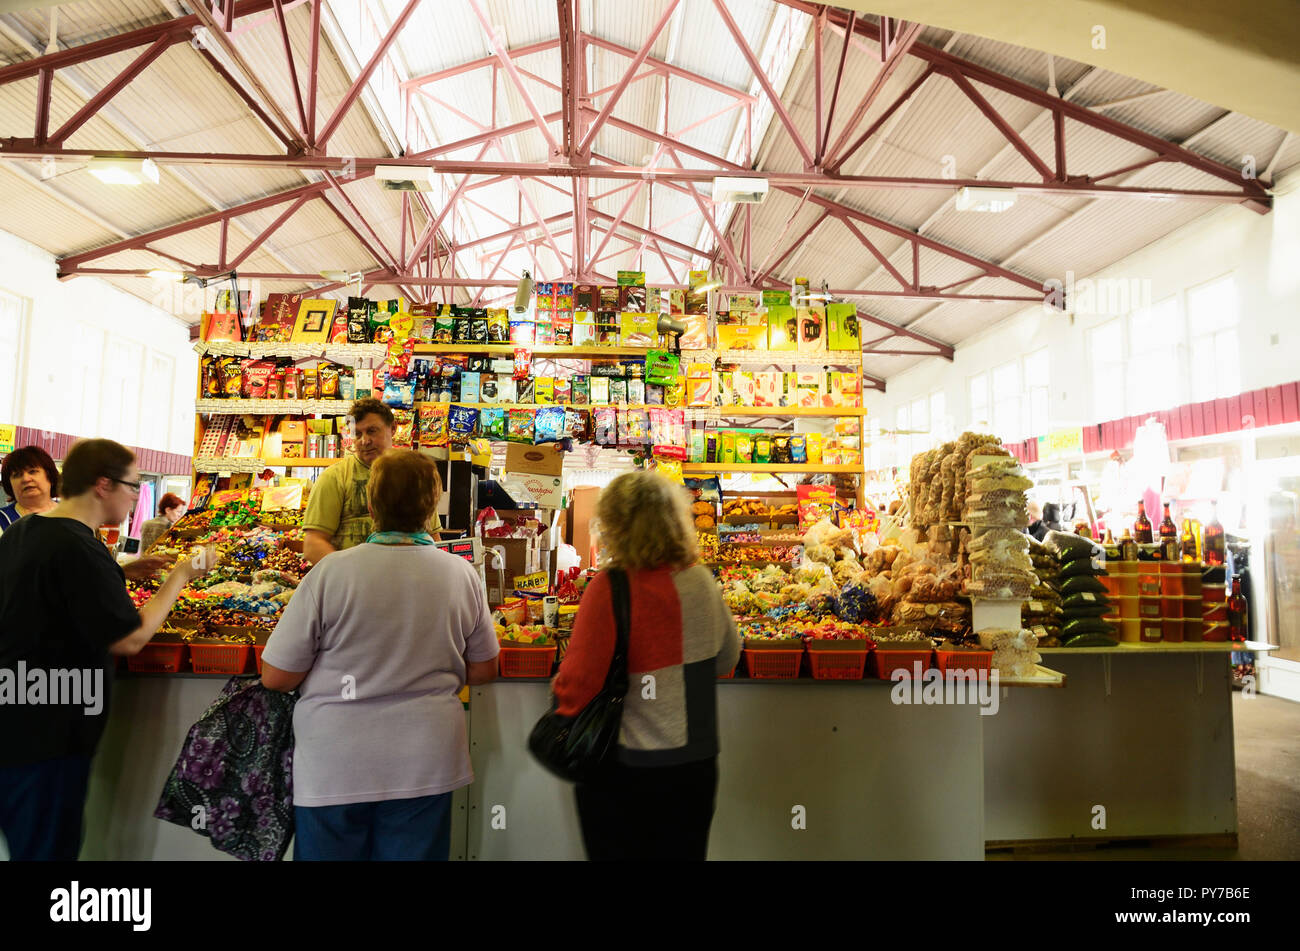 Central Market, Vyborg, Vyborgsky District, Leningrad Oblast, Russia, Russian Federation - Stock Image